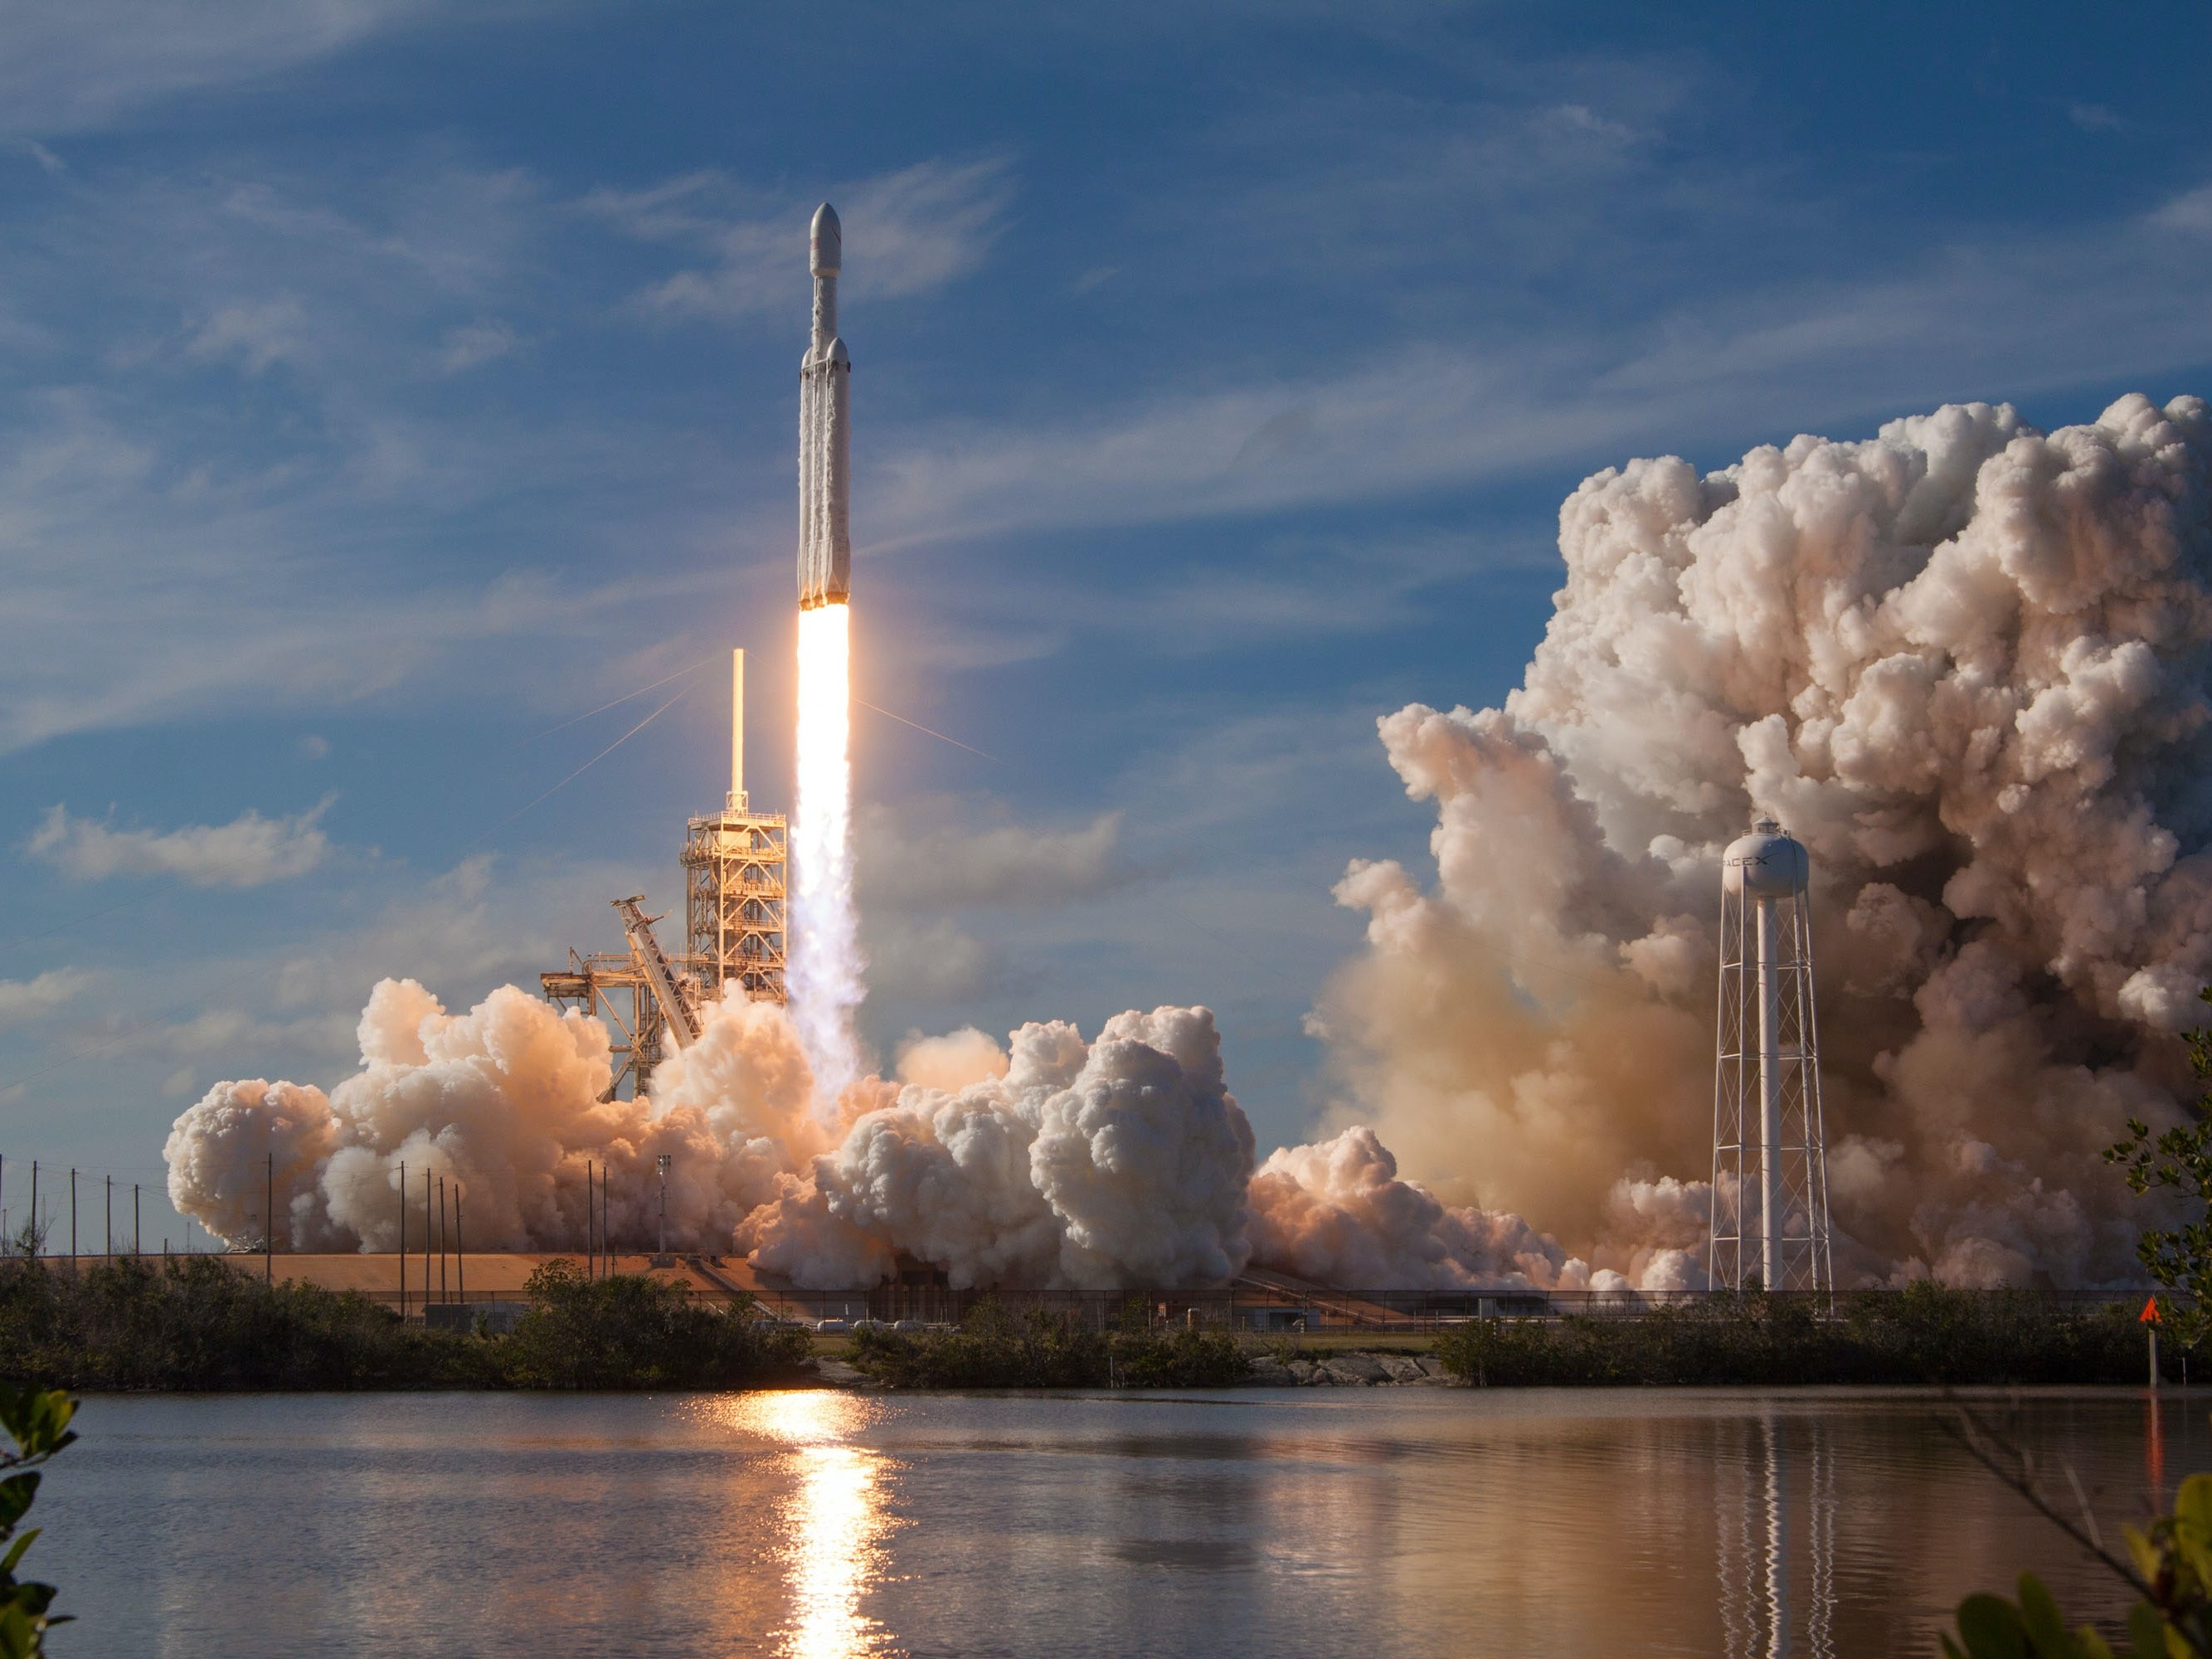 A rocket taking off from a launching base. Image credit: SpaceX/Unsplash